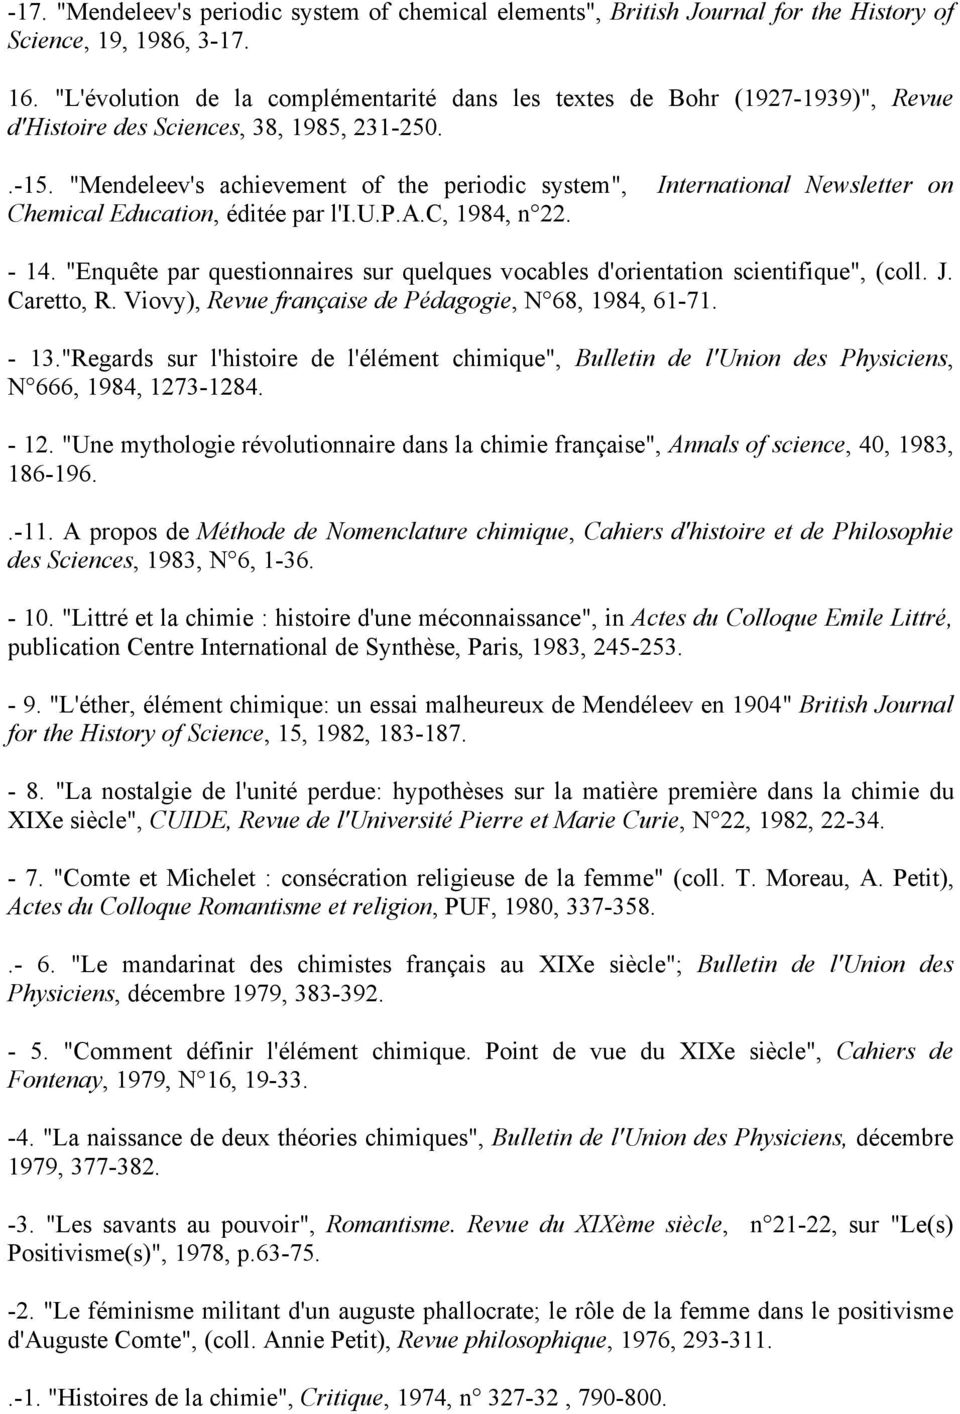 """Mendeleev's achievement of the periodic system"", International Newsletter on Chemical Education, éditée par l'i.u.p.a.c, 1984, n 22. - 14."